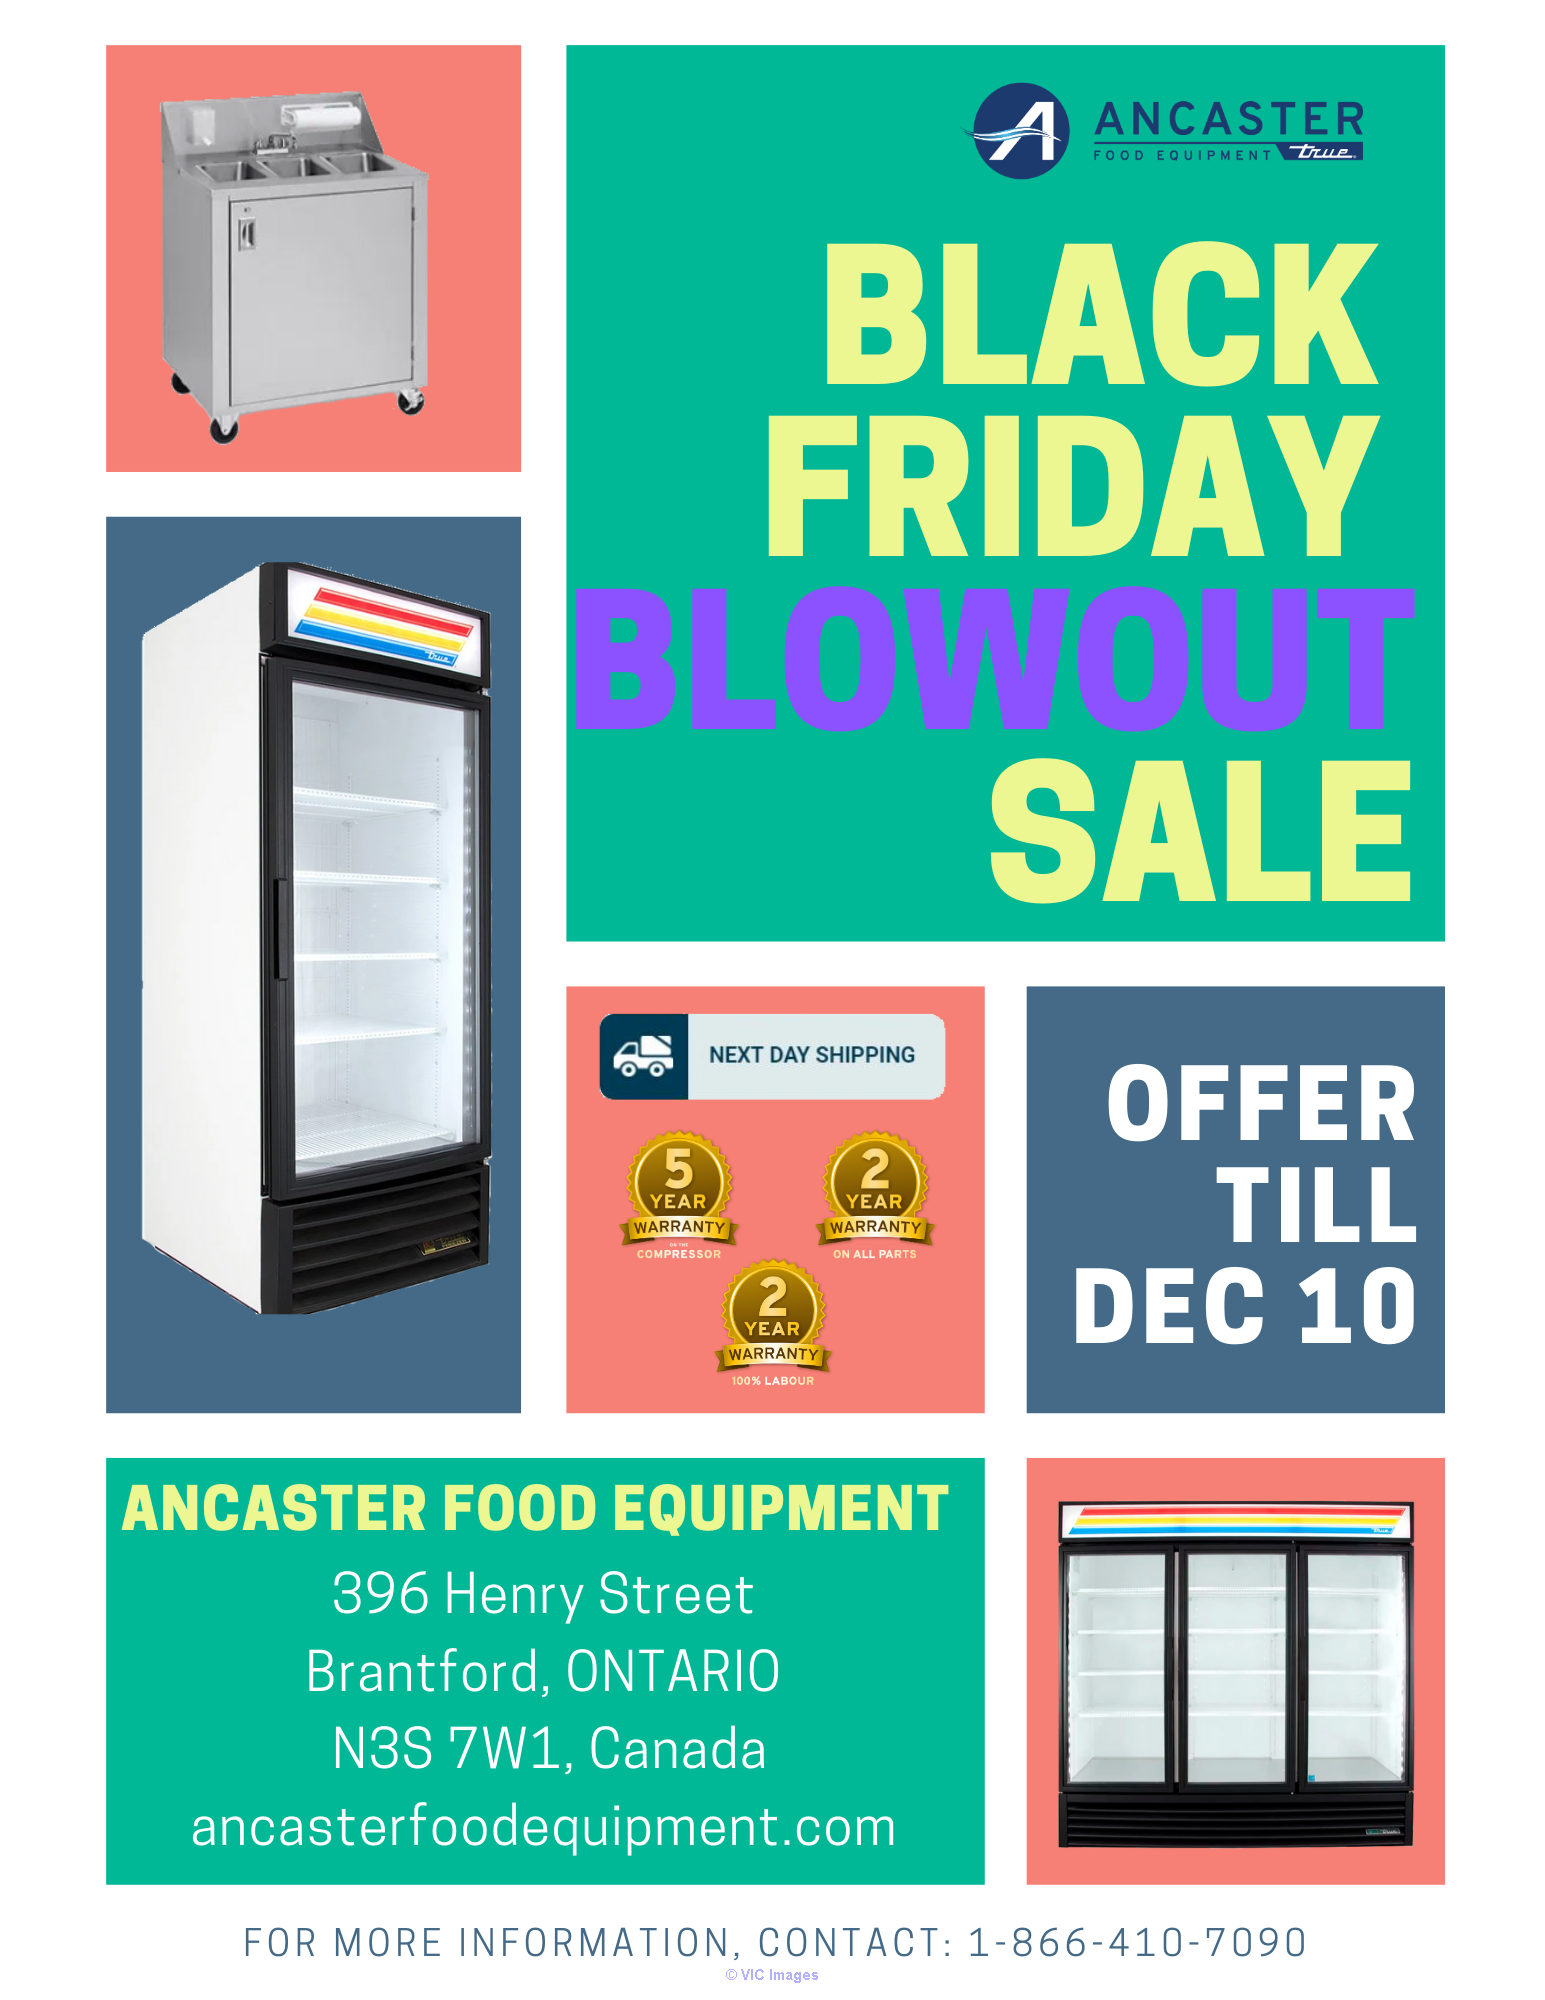 Ancaster Black Friday BlowOut Sale- Refurbished Coolers and Freezers ottawa